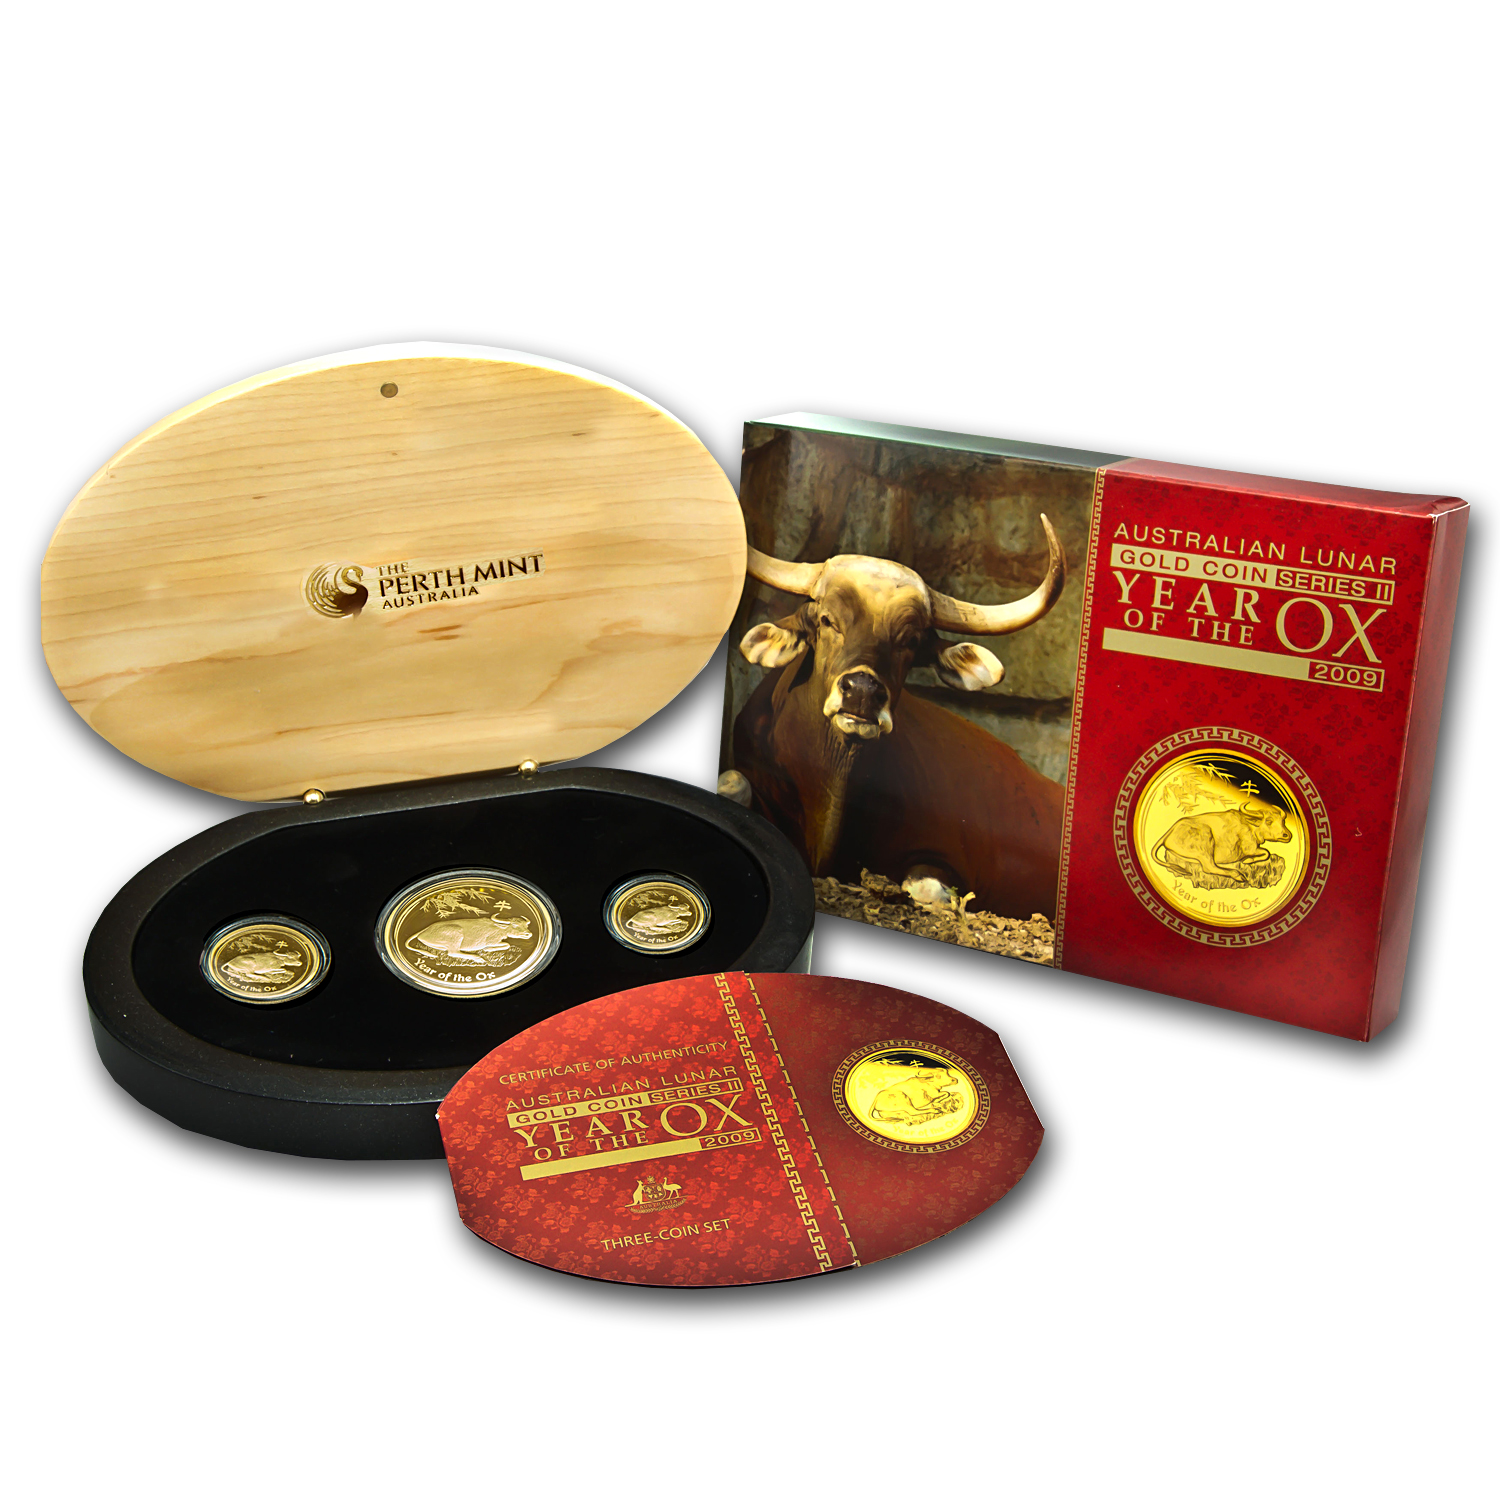 2009 3-Coin Gold Lunar Year of the Ox Proof Set (Series II)